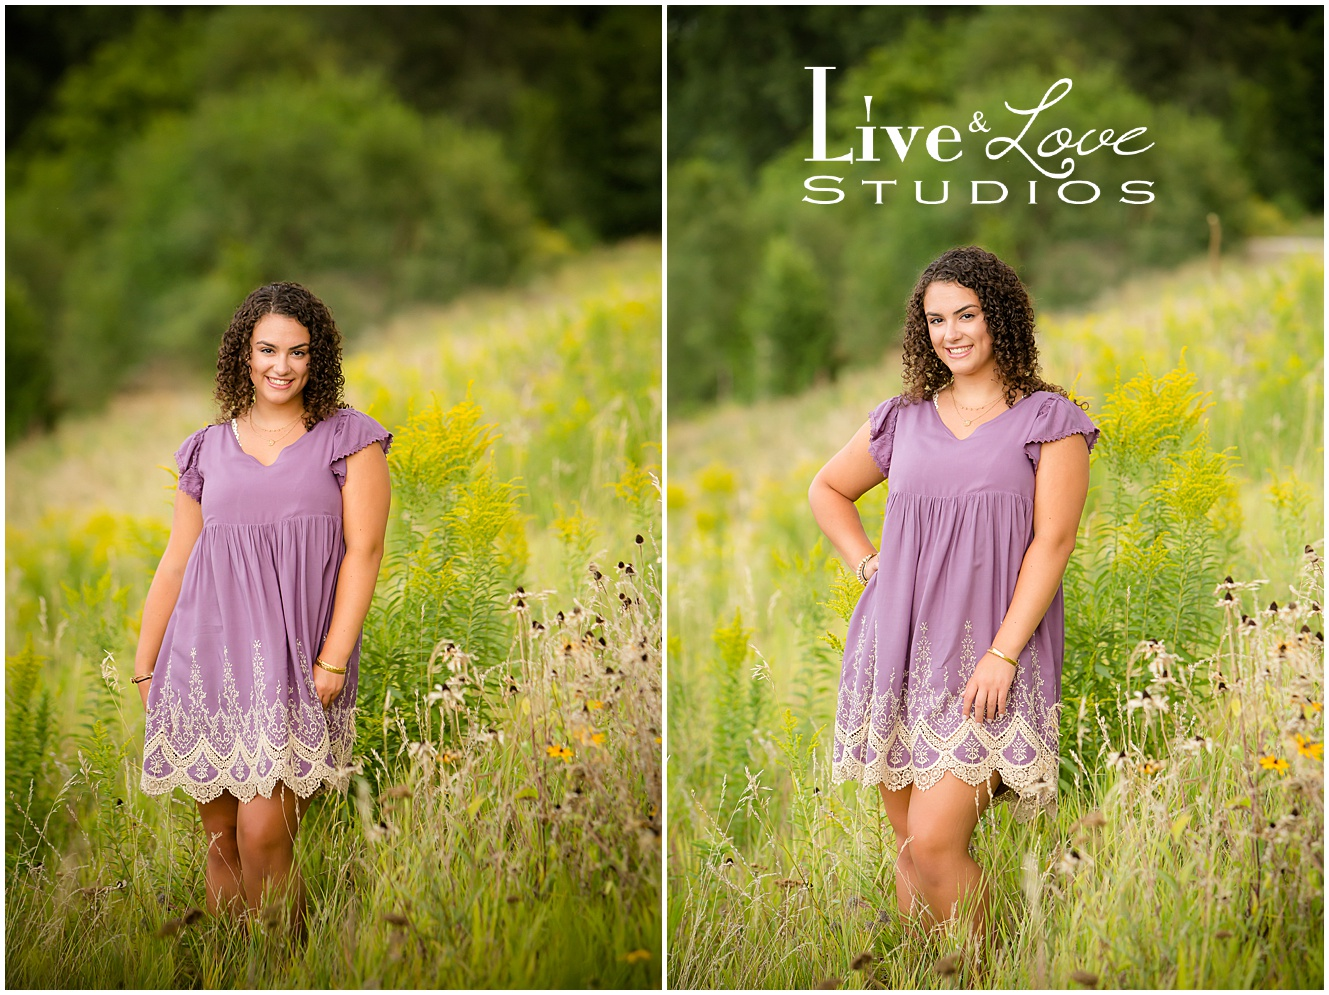 eagan-mn-high-school-senior-photography_0966.jpg